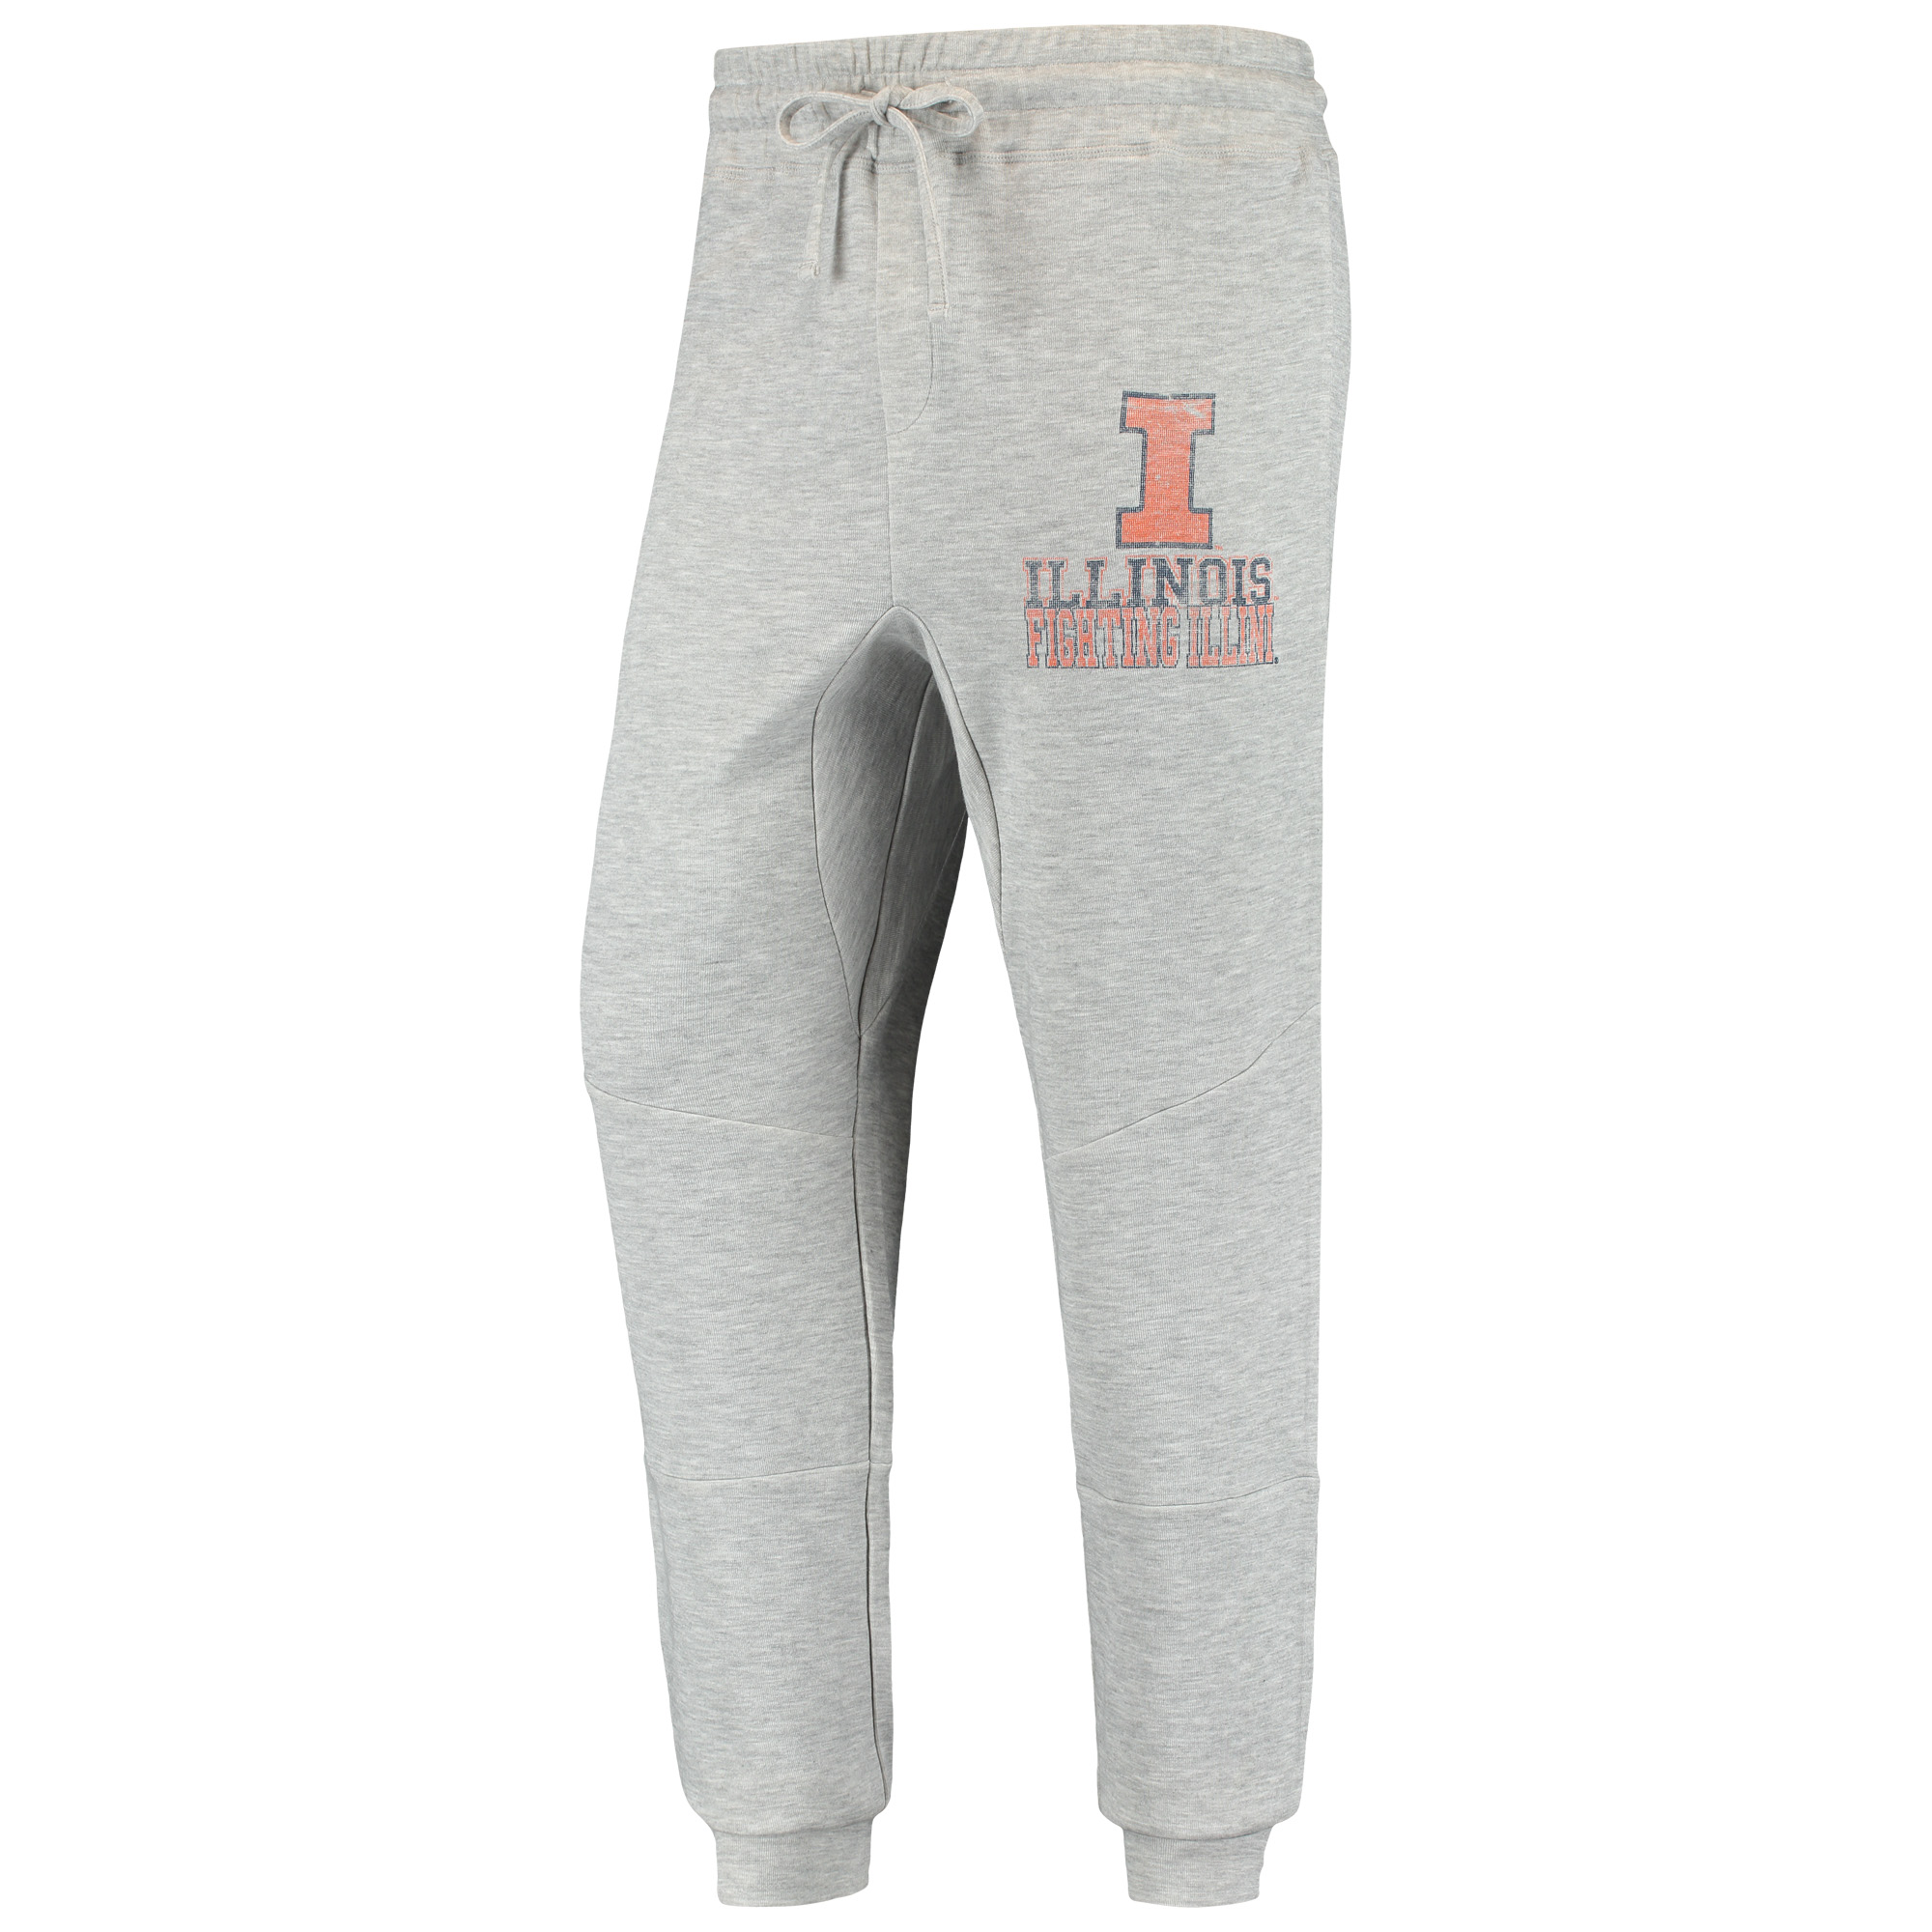 Illinois Fighting Illini Official NCAA Adult Size Athletic Sweatpants New Tags